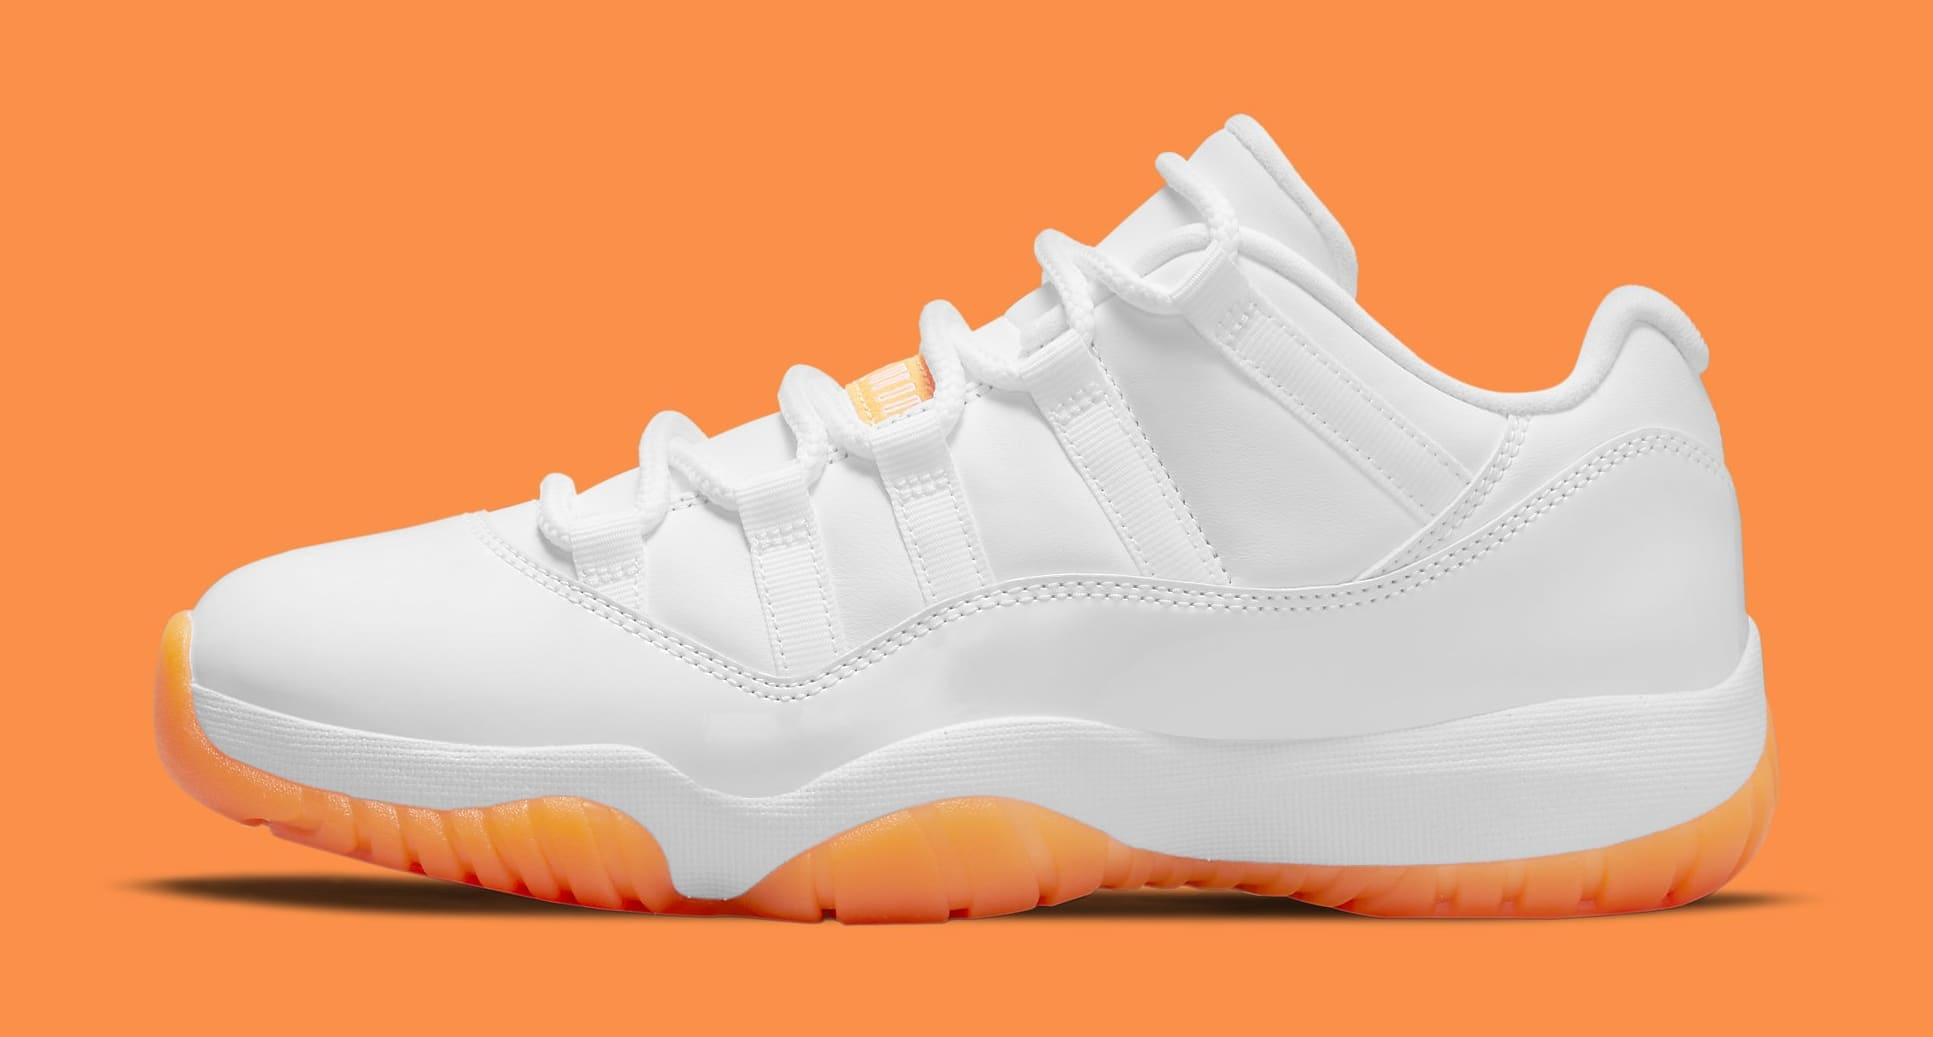 Air Jordan 11 Retro Low Women's 'Citrus' AH7860-139 Lateral